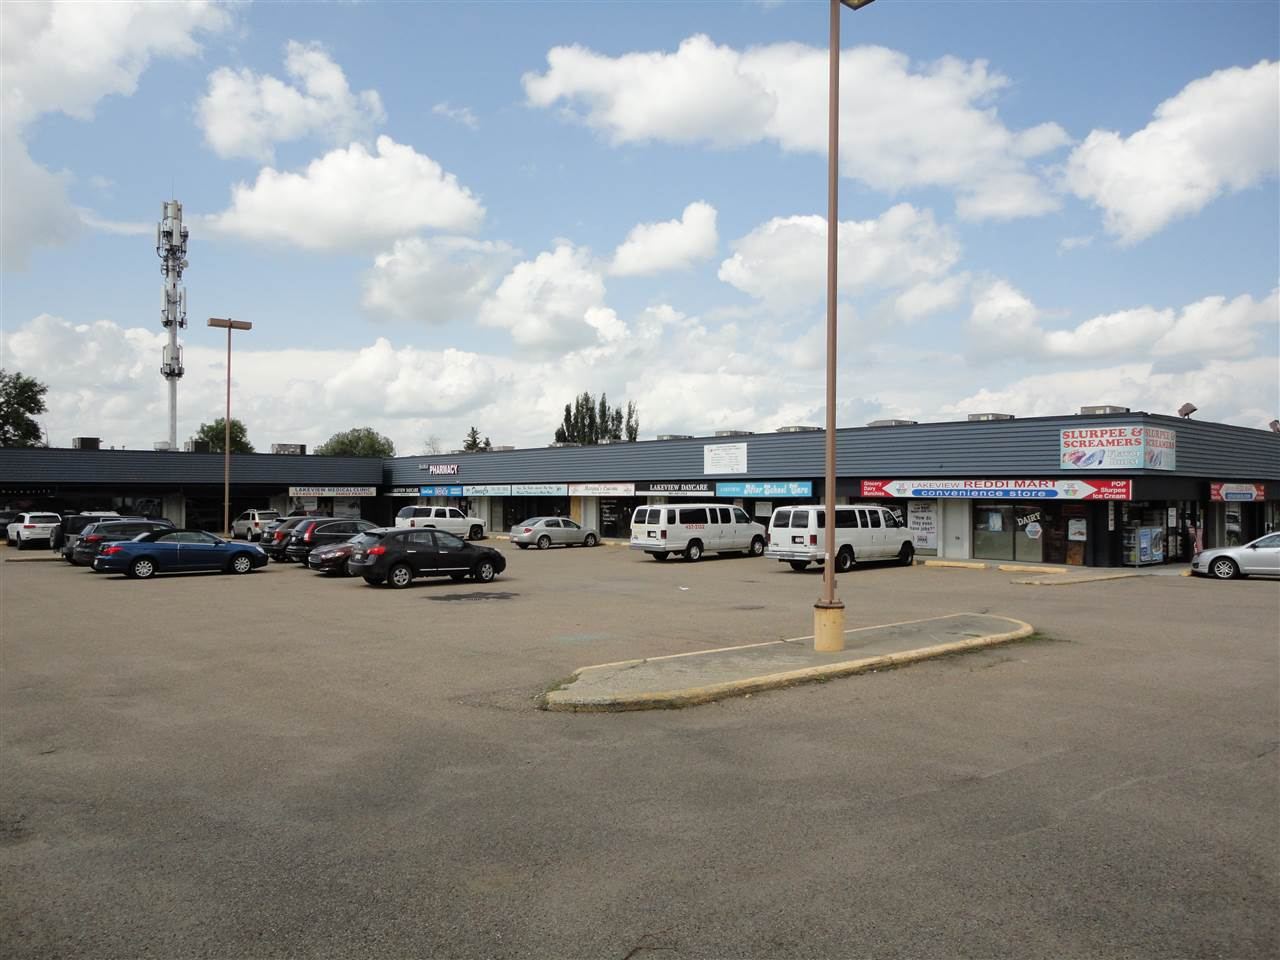 Retail Property for Sale, MLS® # E4165882